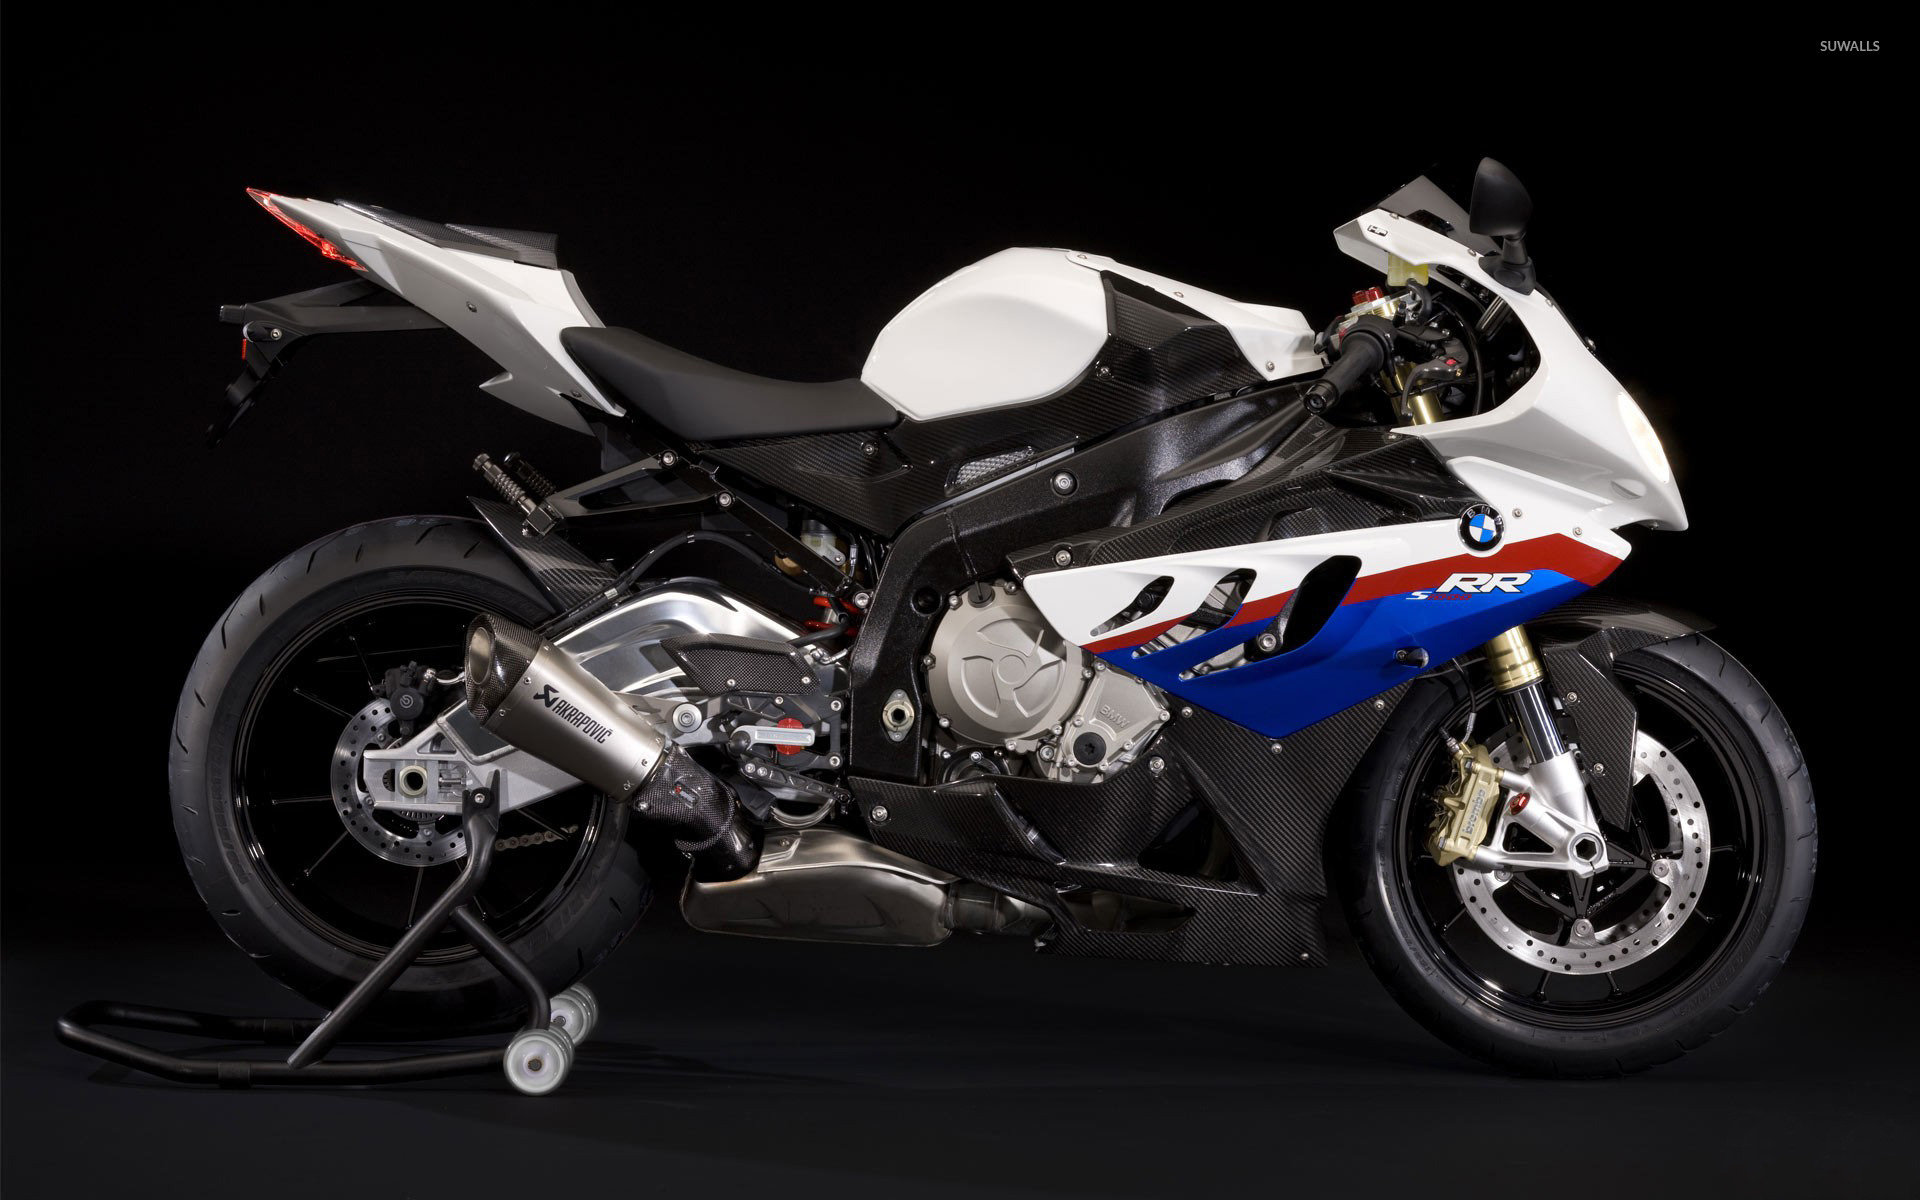 BMW S1000RR 2 Wallpaper  Motorcycle Wallpapers 11206